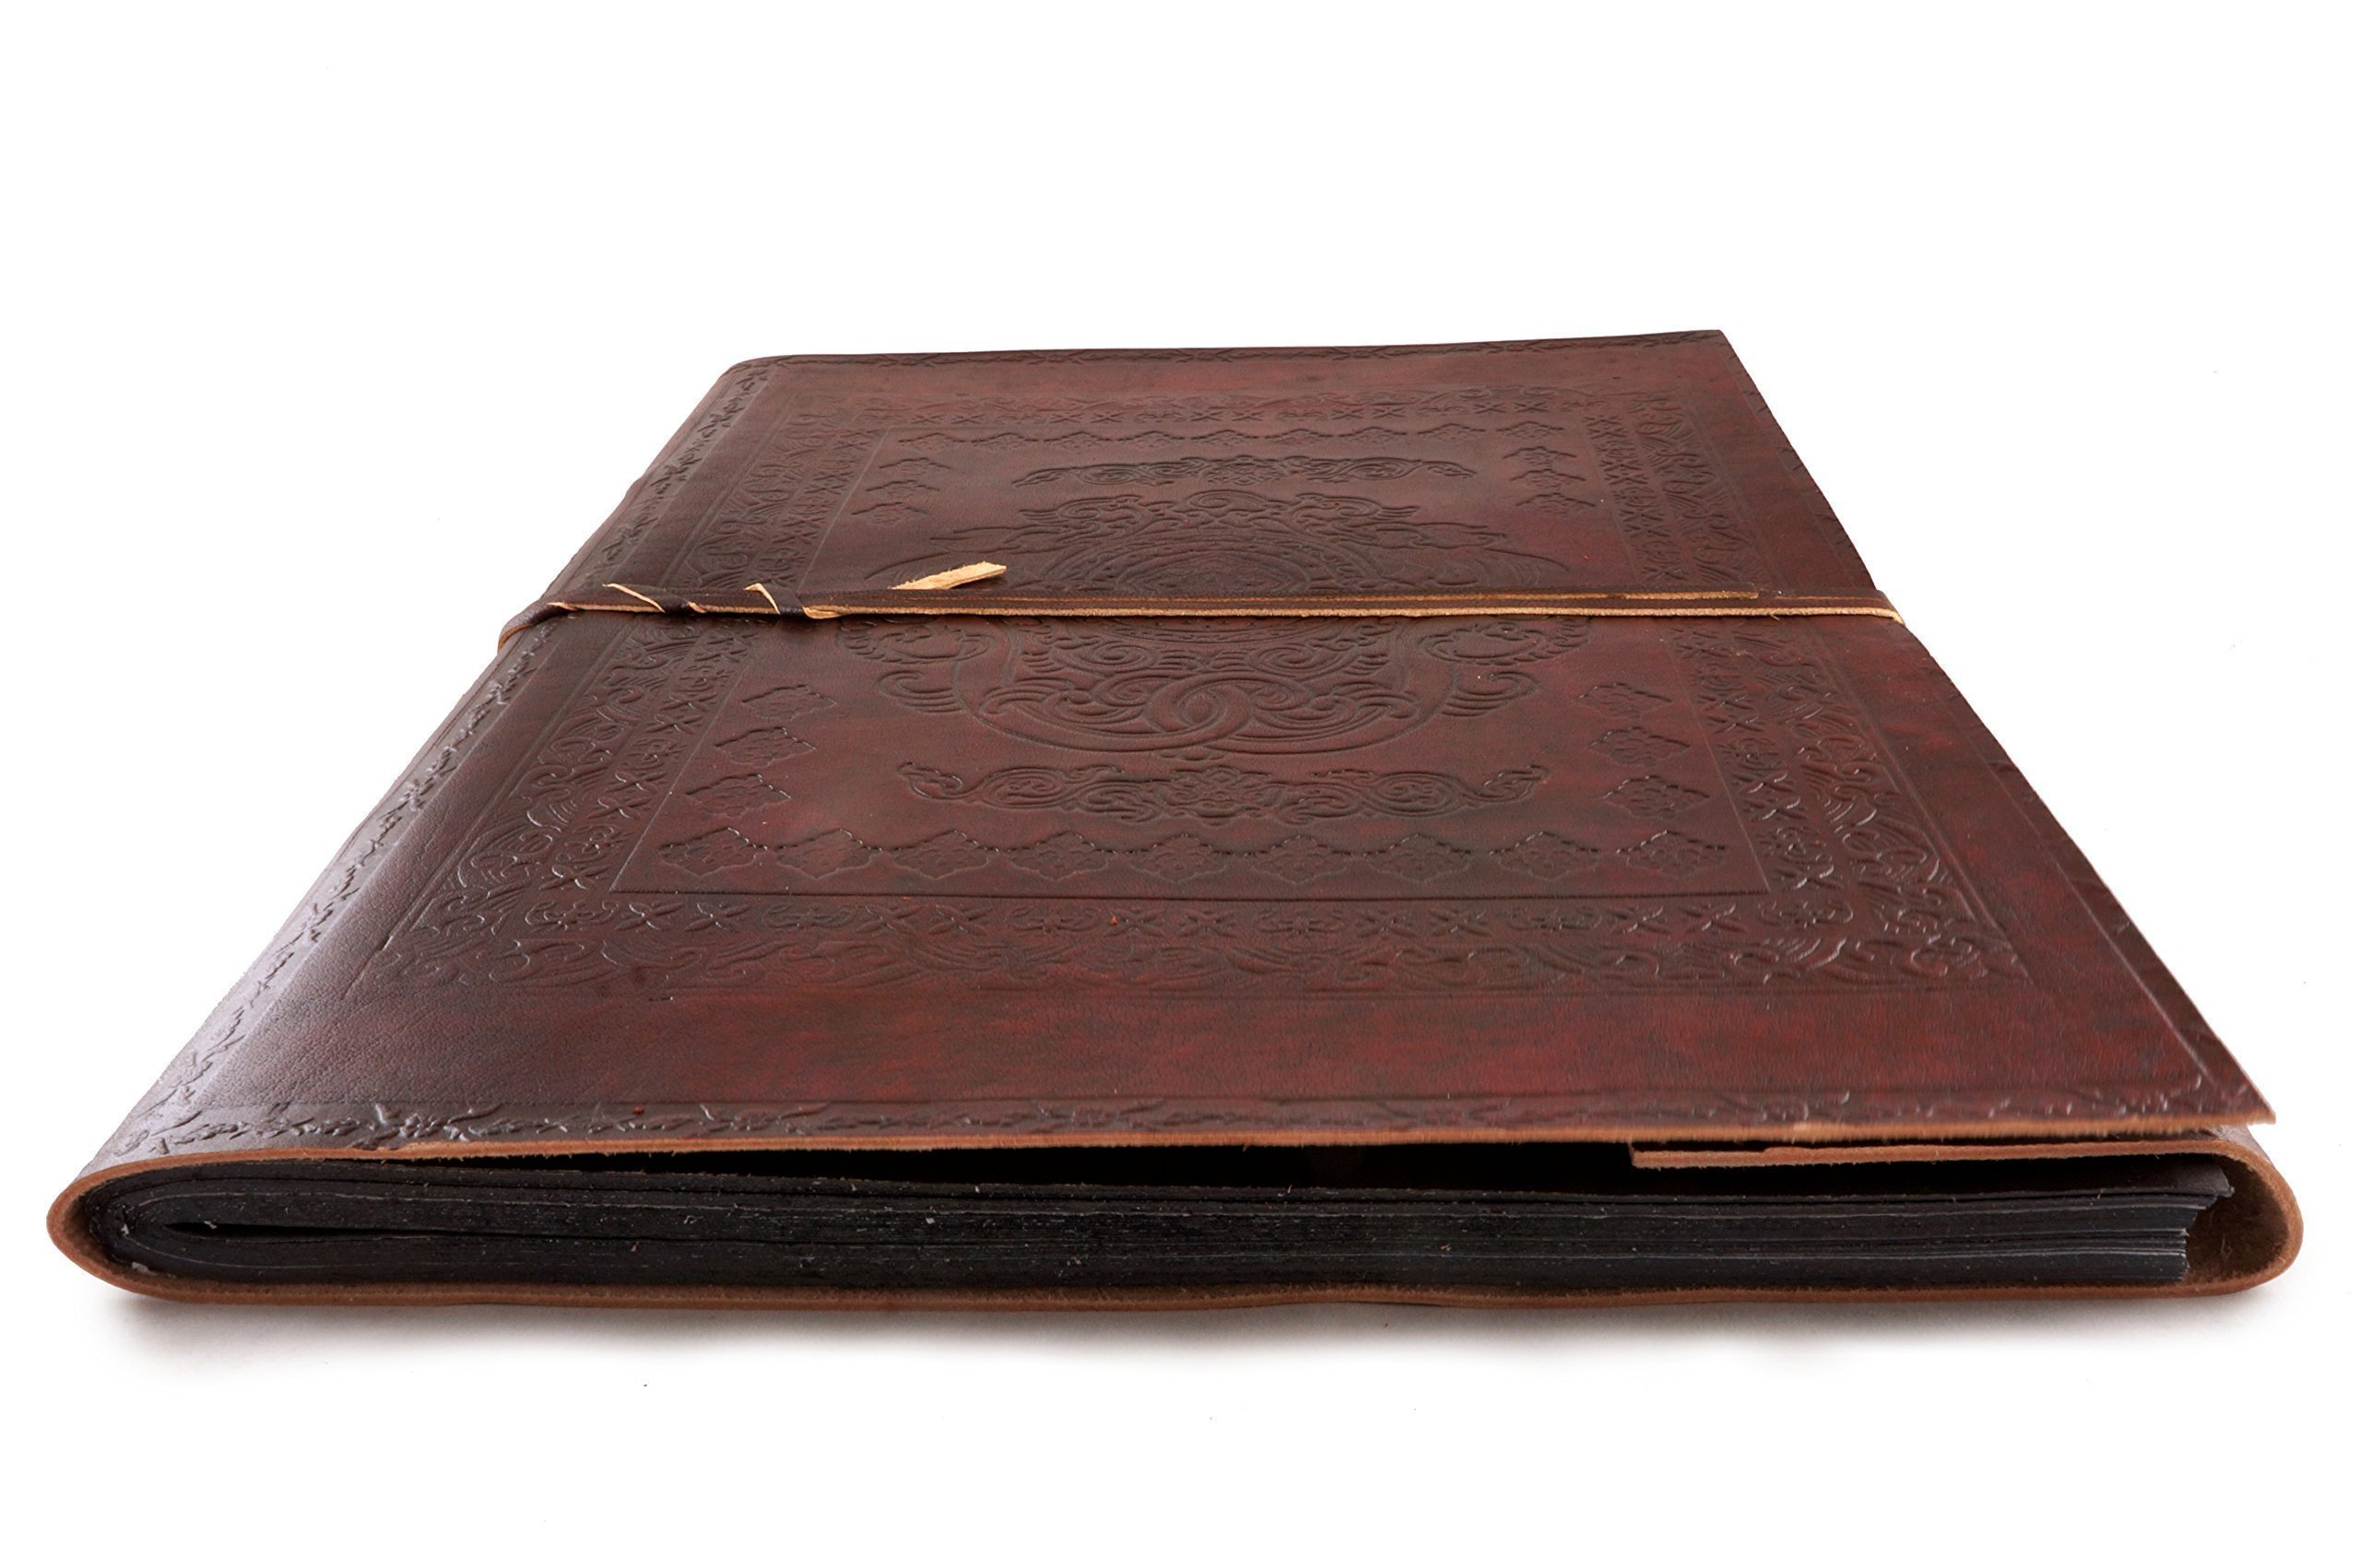 Giant Leather Photo Album Vintage Classic Rustic Embossed 16'' x 11'' Handmade Paper 40 Sheets